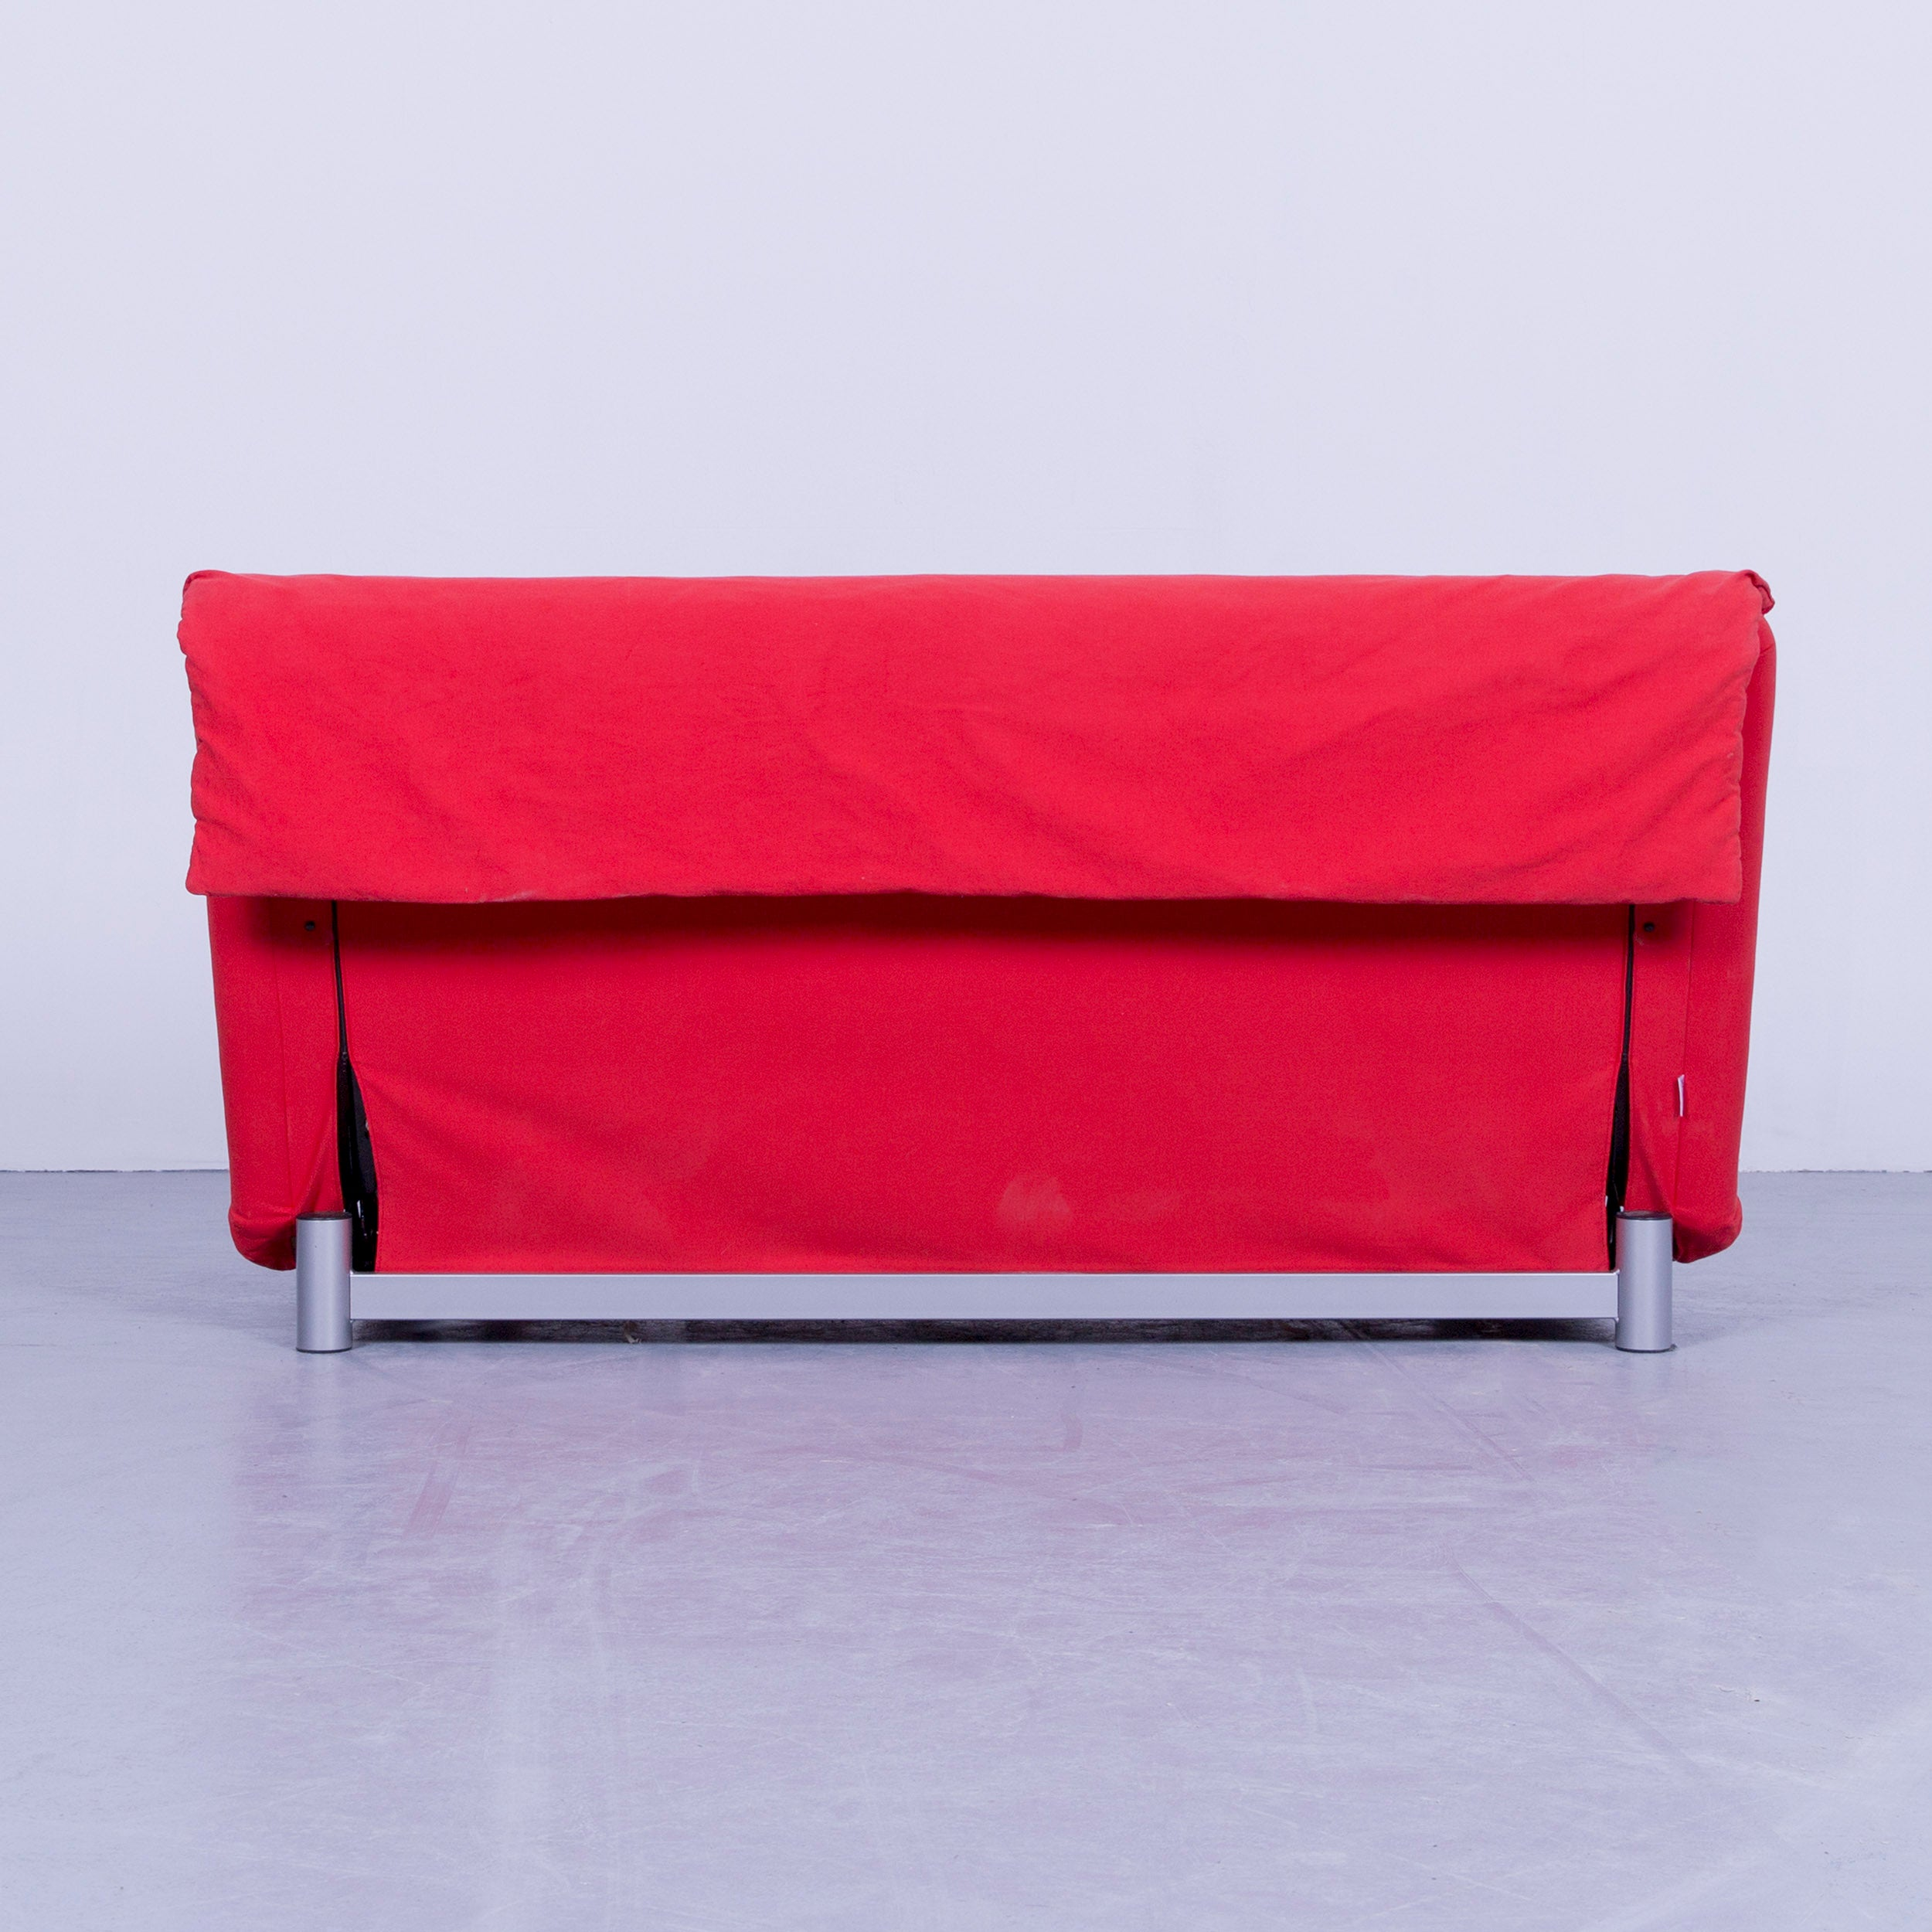 Schlafcouch Ligne Roset Original Ligne Roset Multy Cloth Sleeping Couch Red Two Seat Function Modern